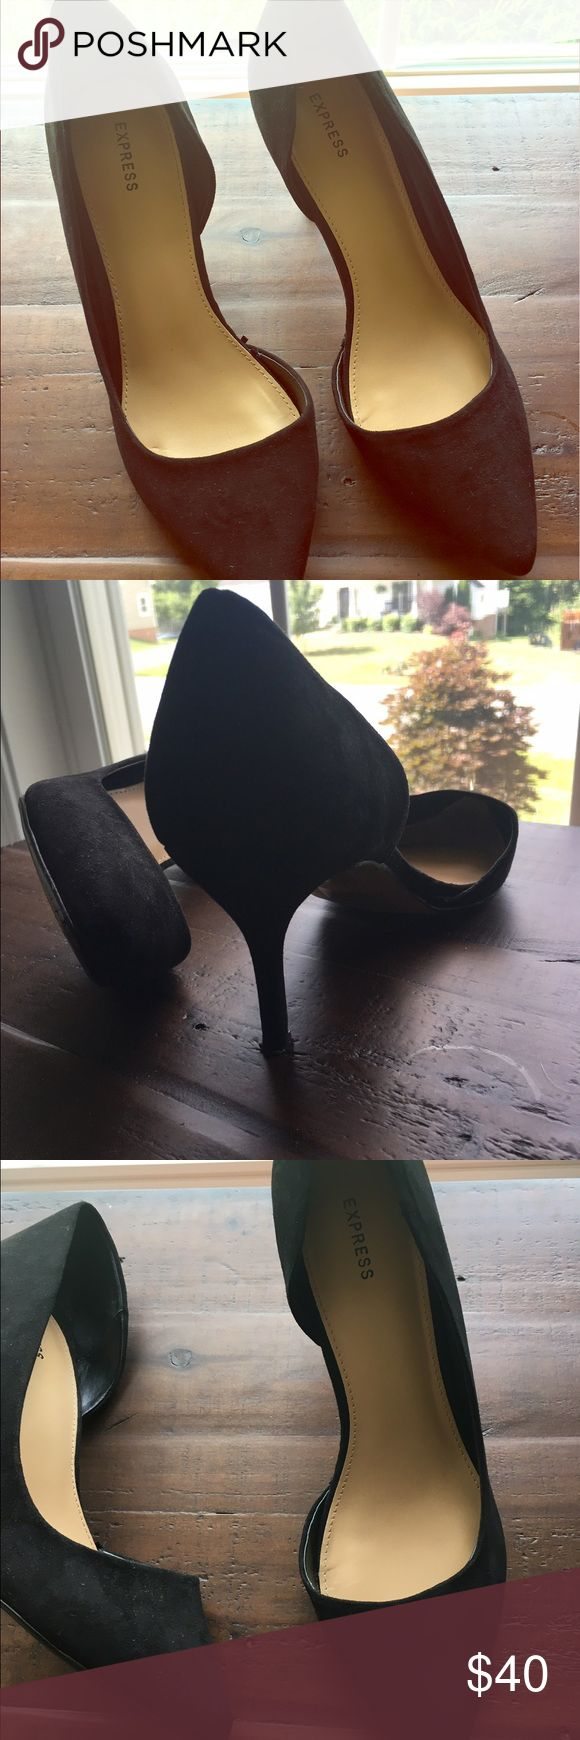 ⭐️Express Suede Black Classy Heels Size 8⭐️ ⭐️Express Suede Black Classy Heels Size 8⭐️ EXPRESS brand. Excellent Condition! Perfect for a formal event or business wear. Next day shipping. Made with suede material on the outside. All sales are final. Express Shoes Heels